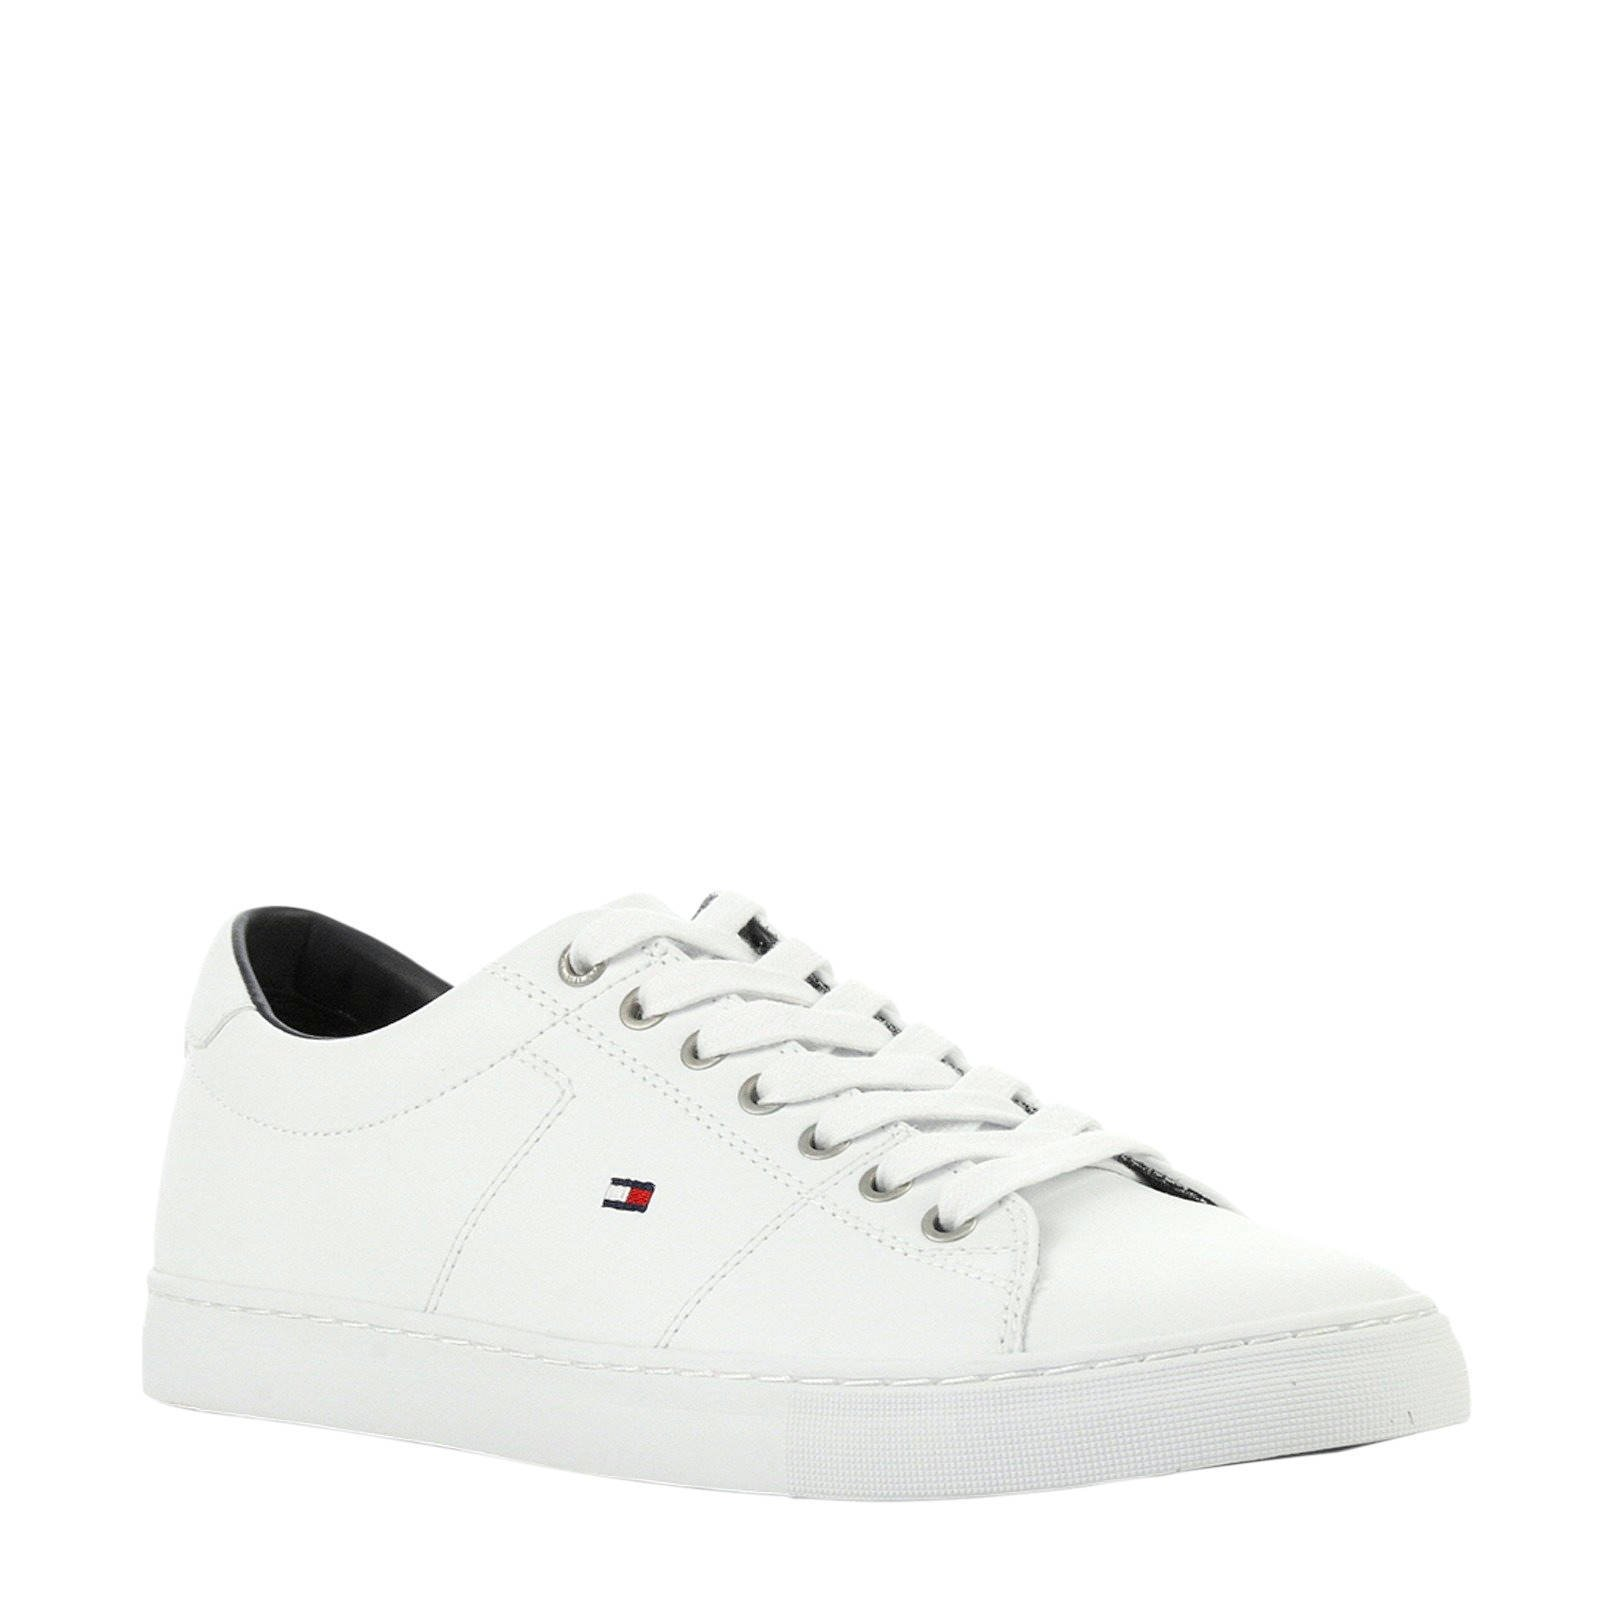 Essential leren sneakers wit